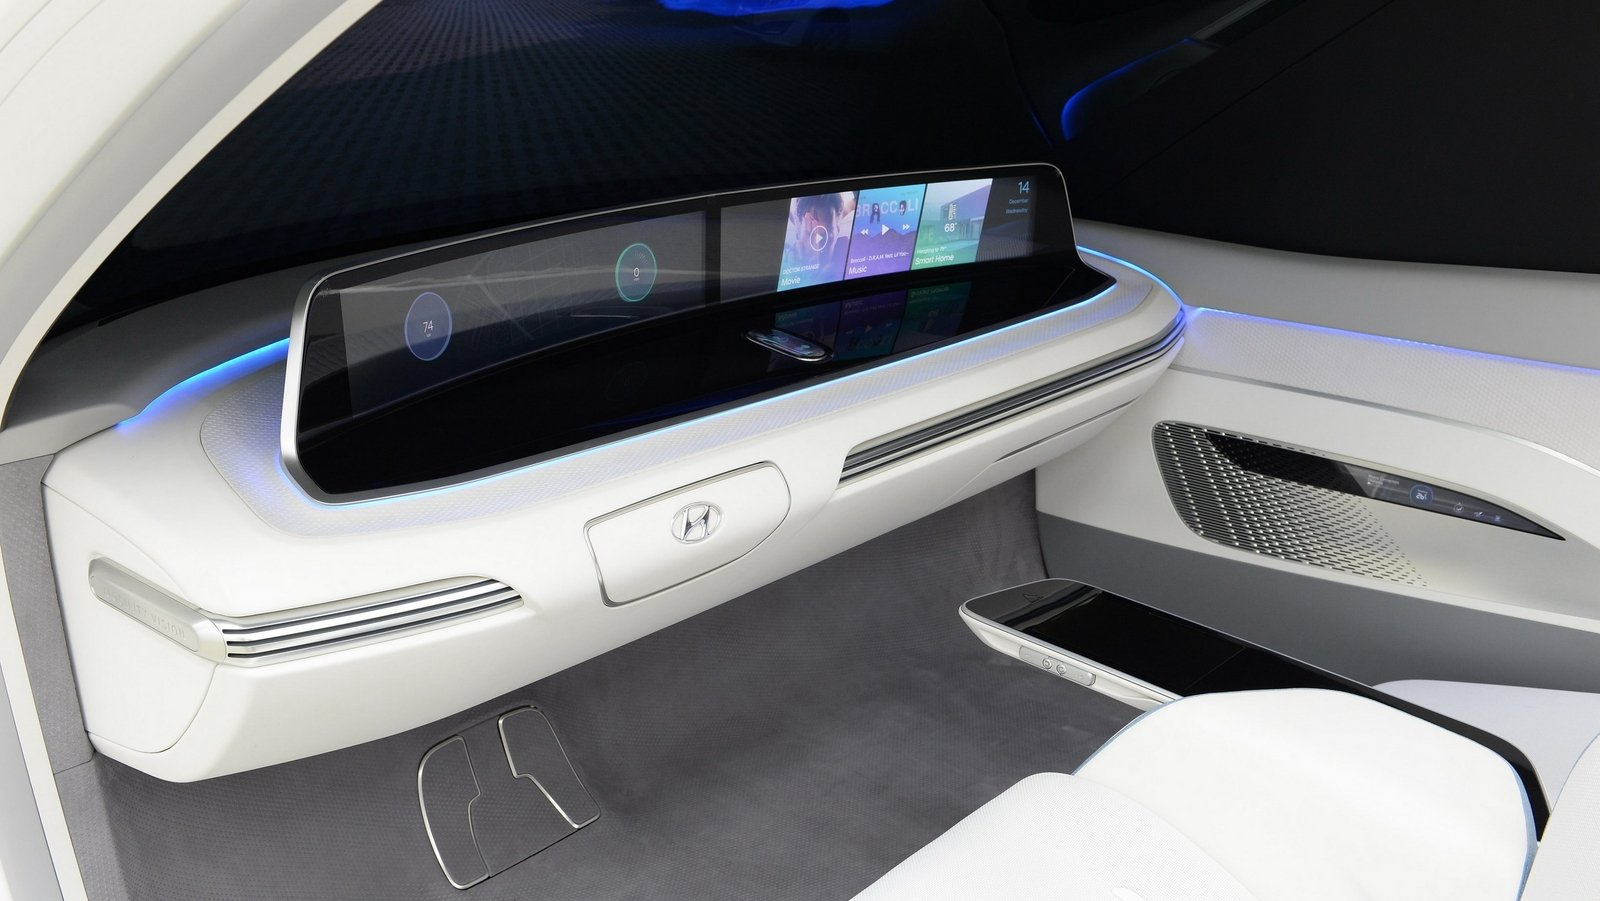 Hyundai Health Care Cockpit Shows The Future Of Stress